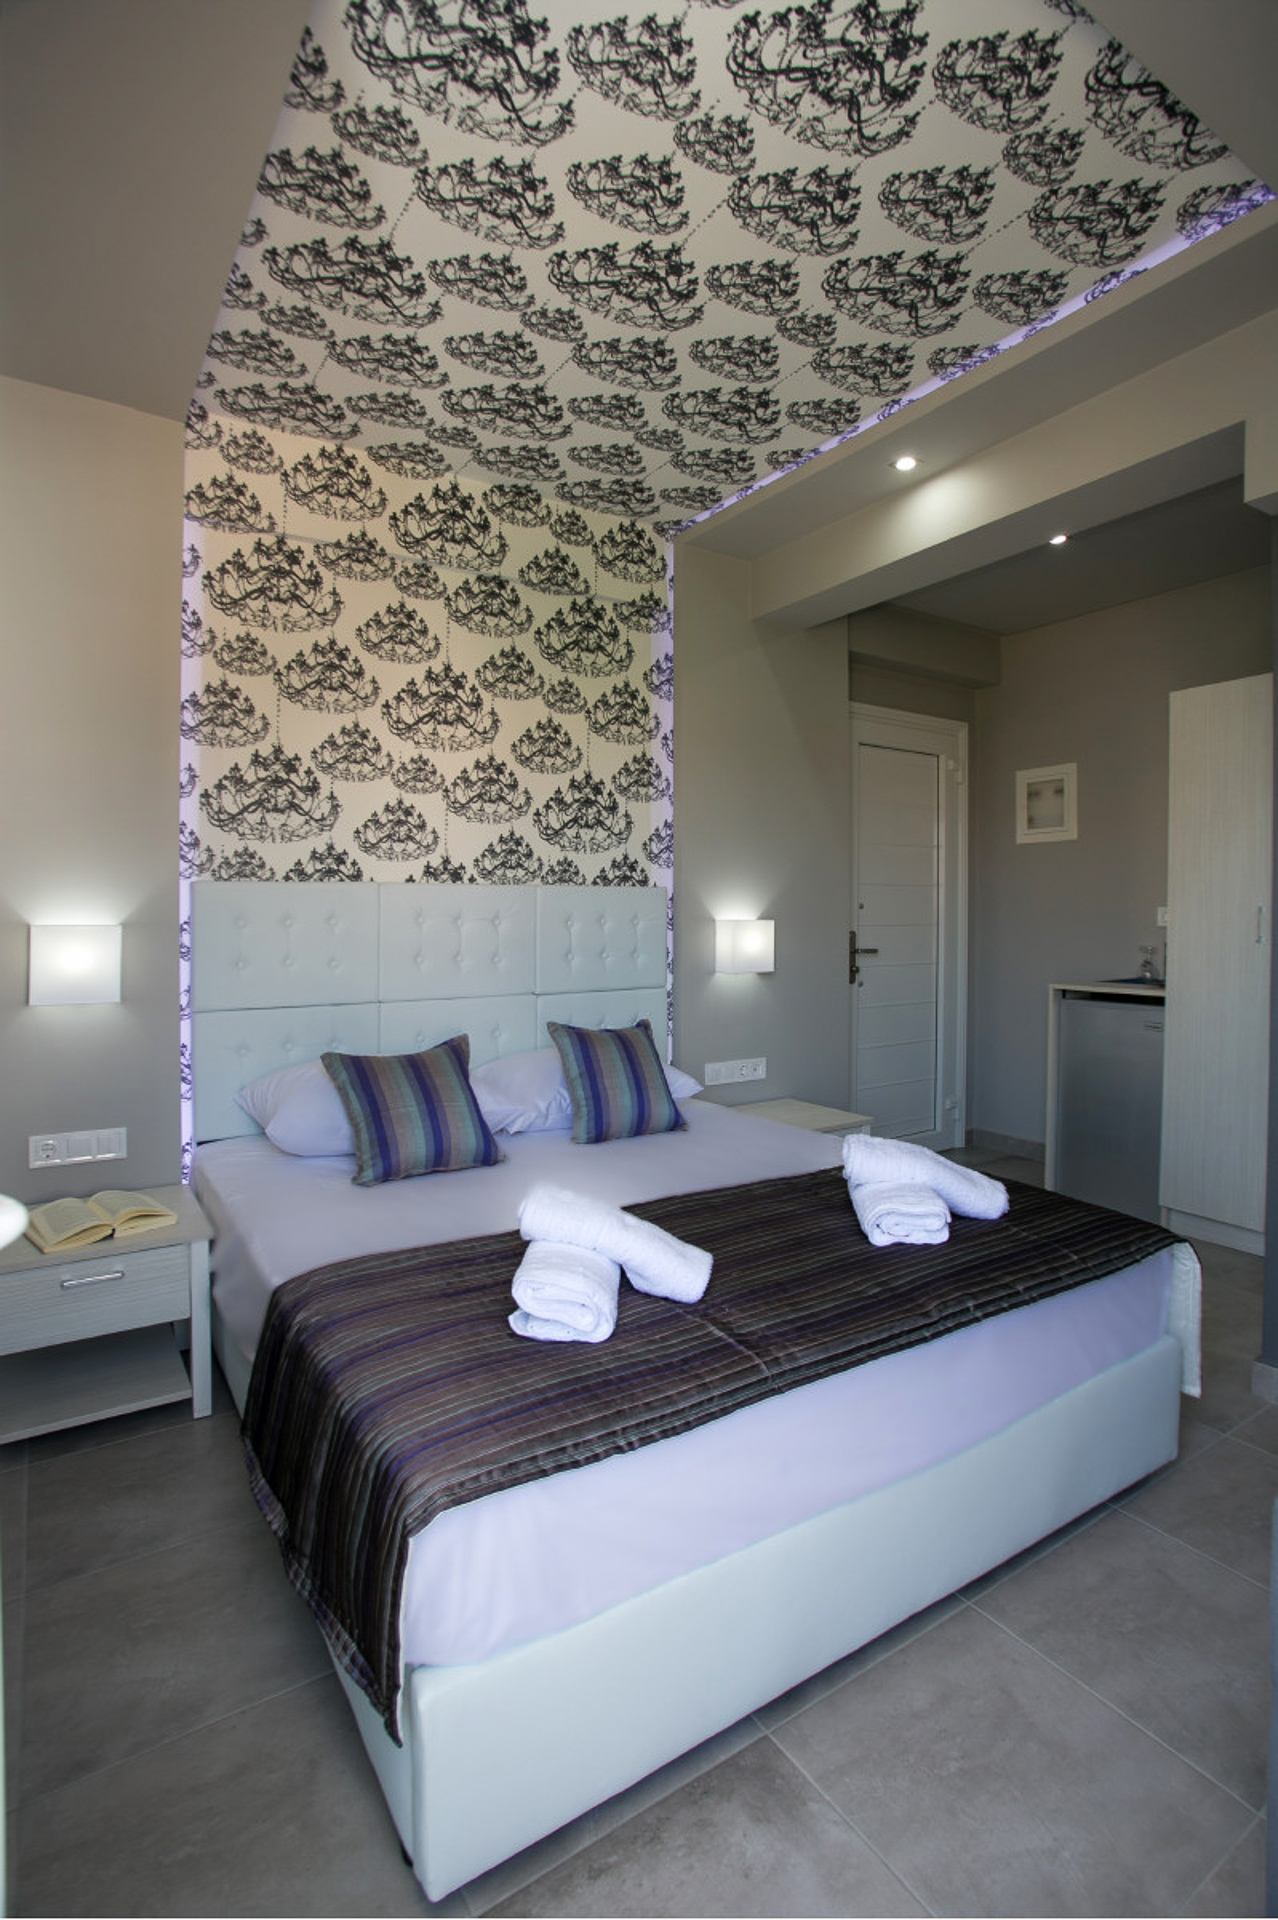 la feyra luxury rooms limenaria thassos diamond room 5